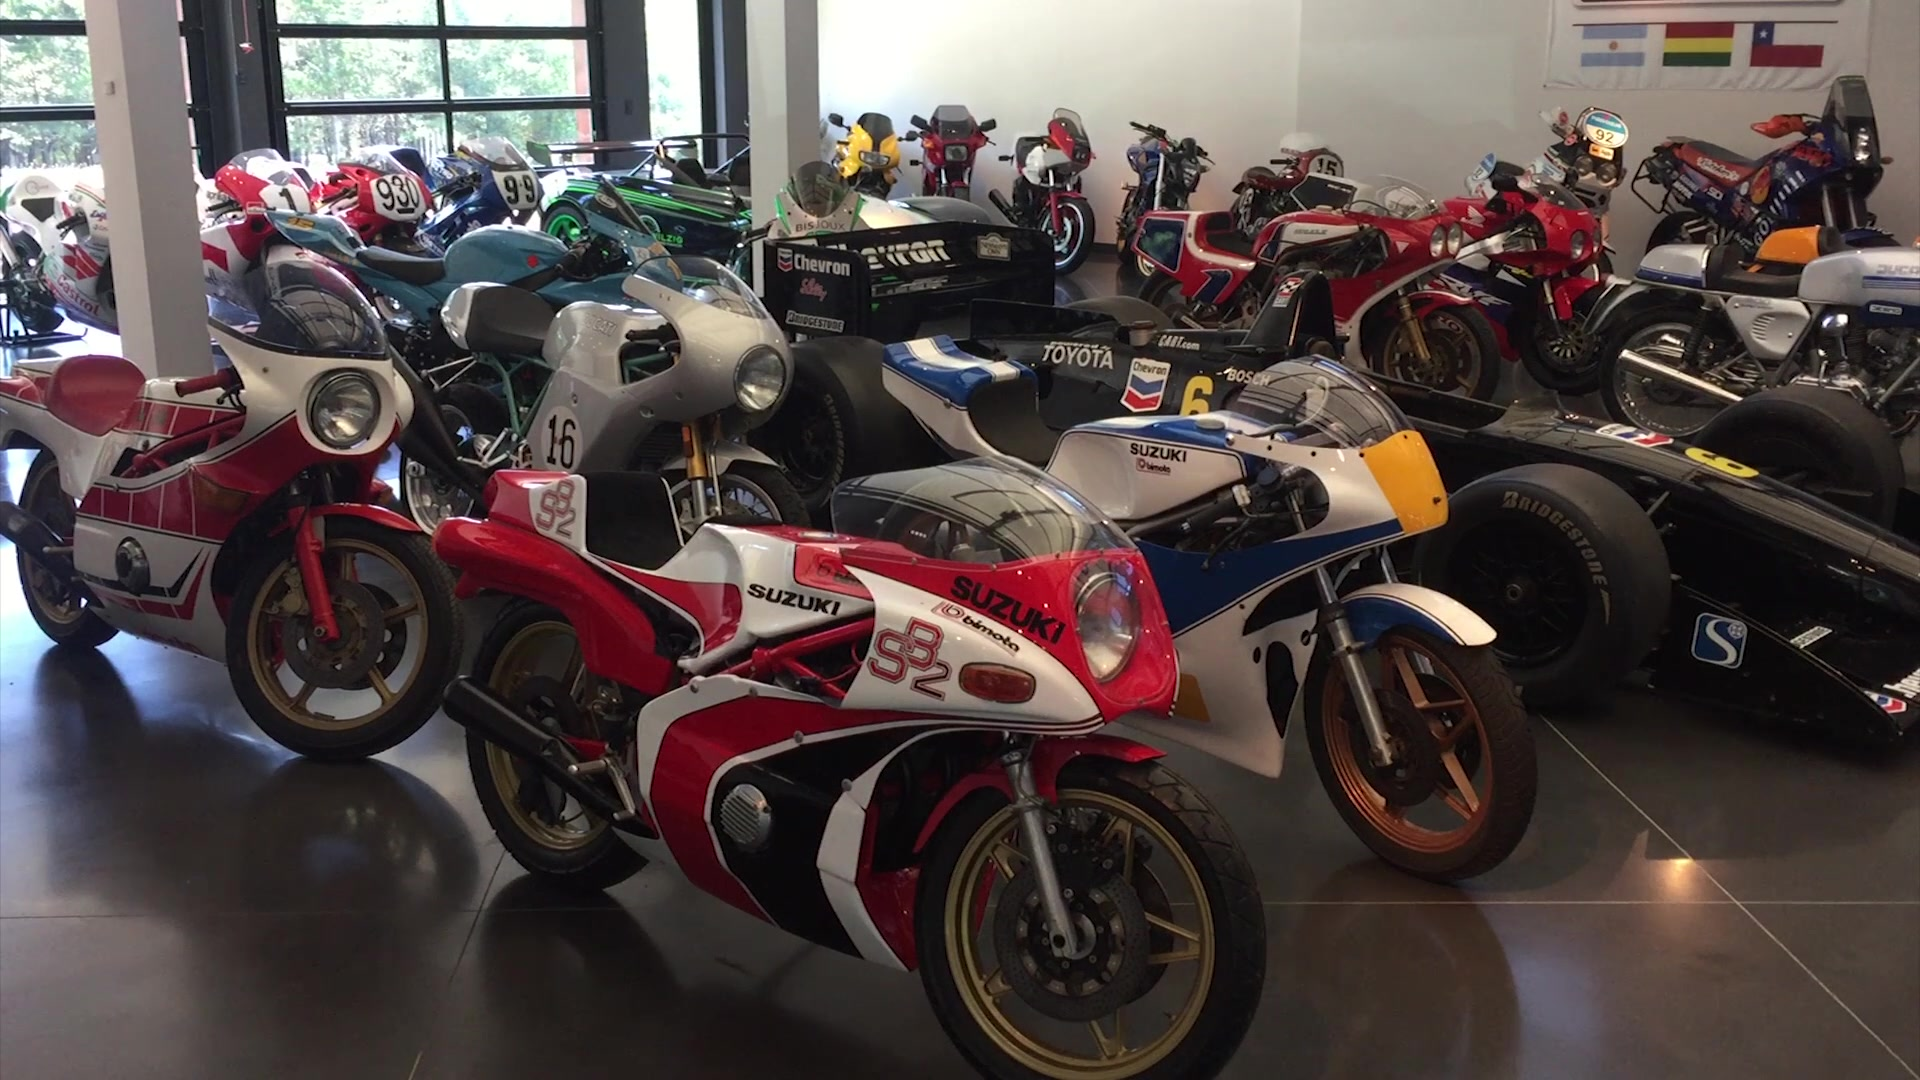 Wilzig Racing Manor Motorcycle Collection | On Location